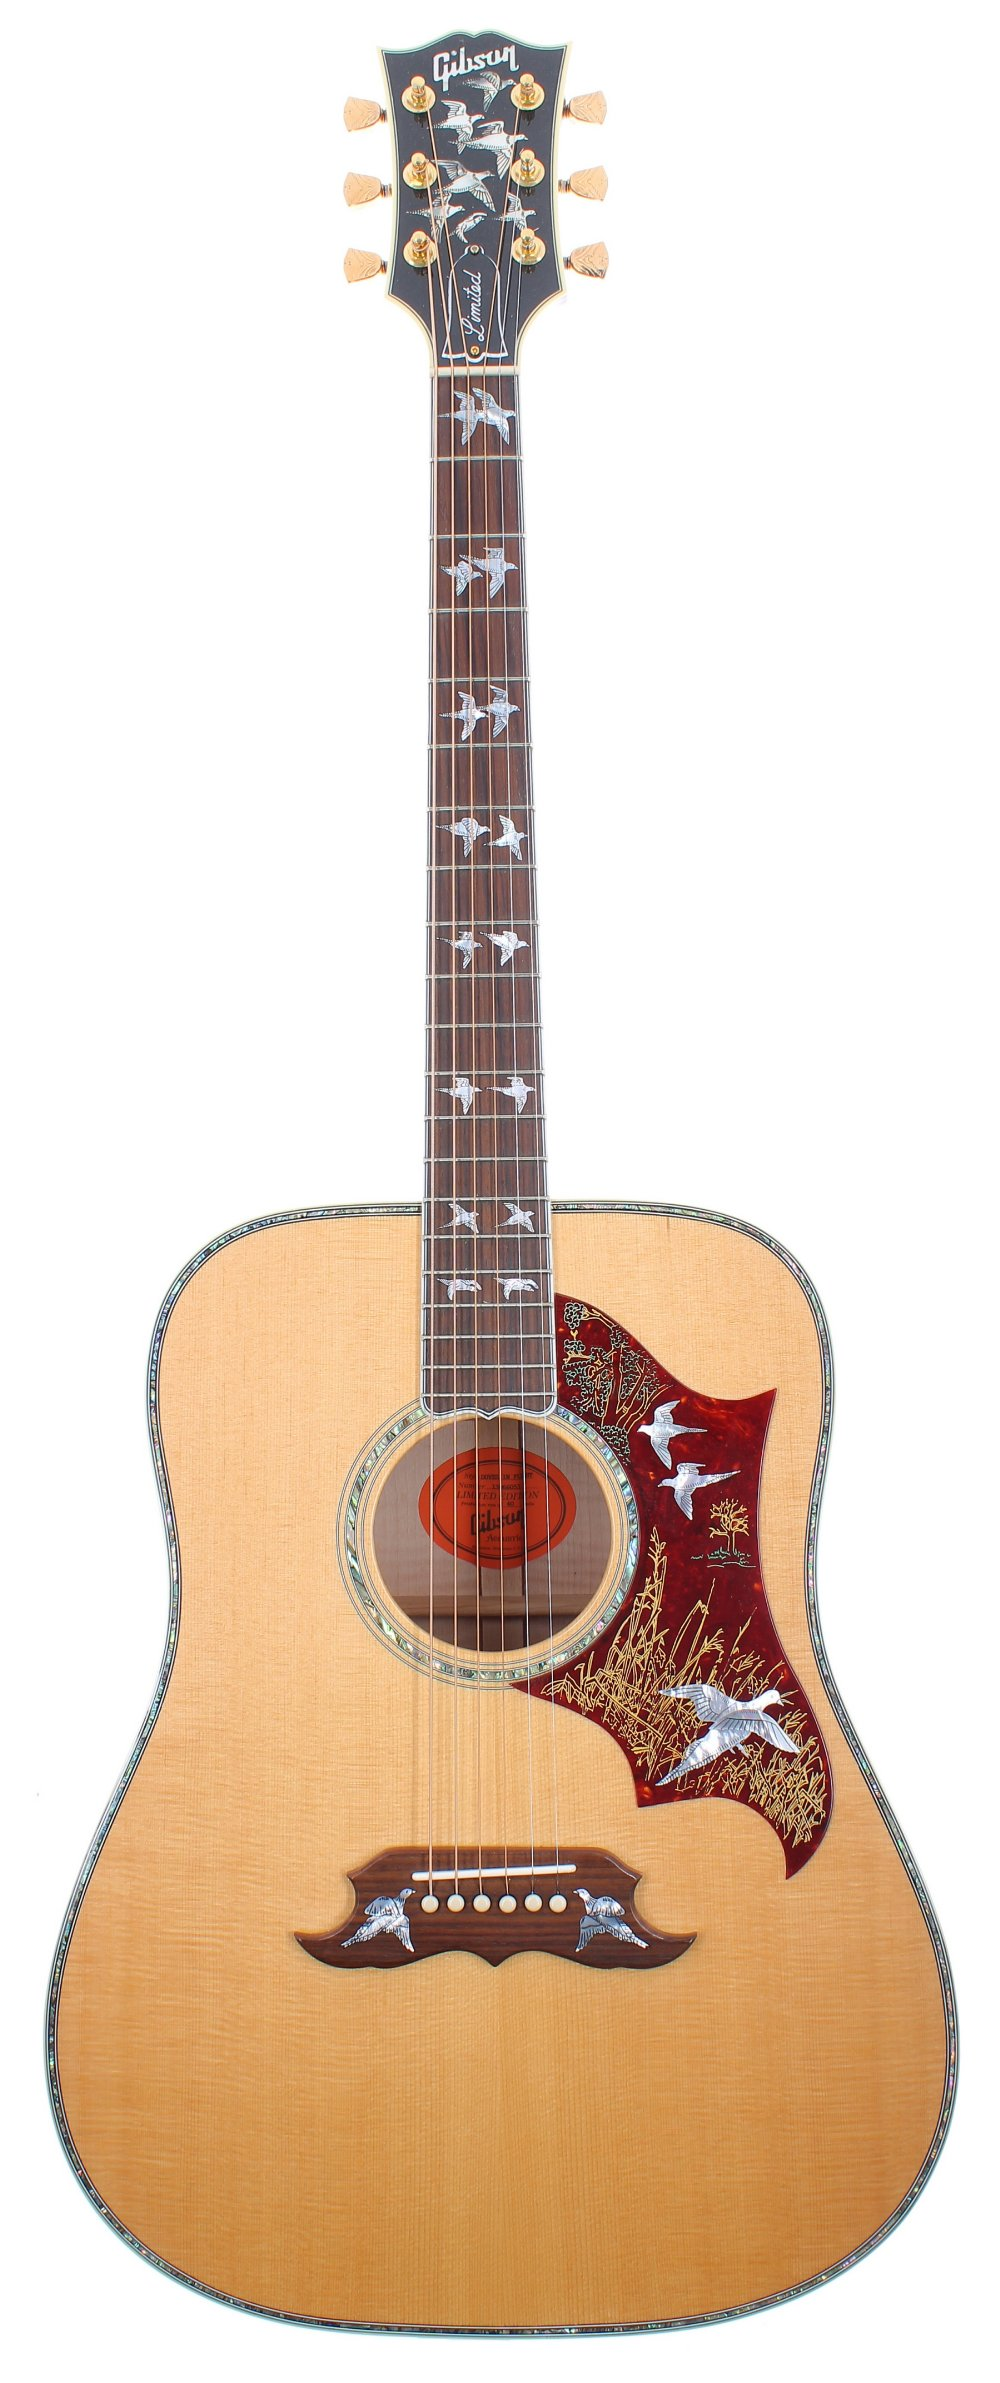 2016 Gibson Limited Edition Doves in Flight acoustic guitar, made in USA, ser. no. 1xxx6xx3; Back